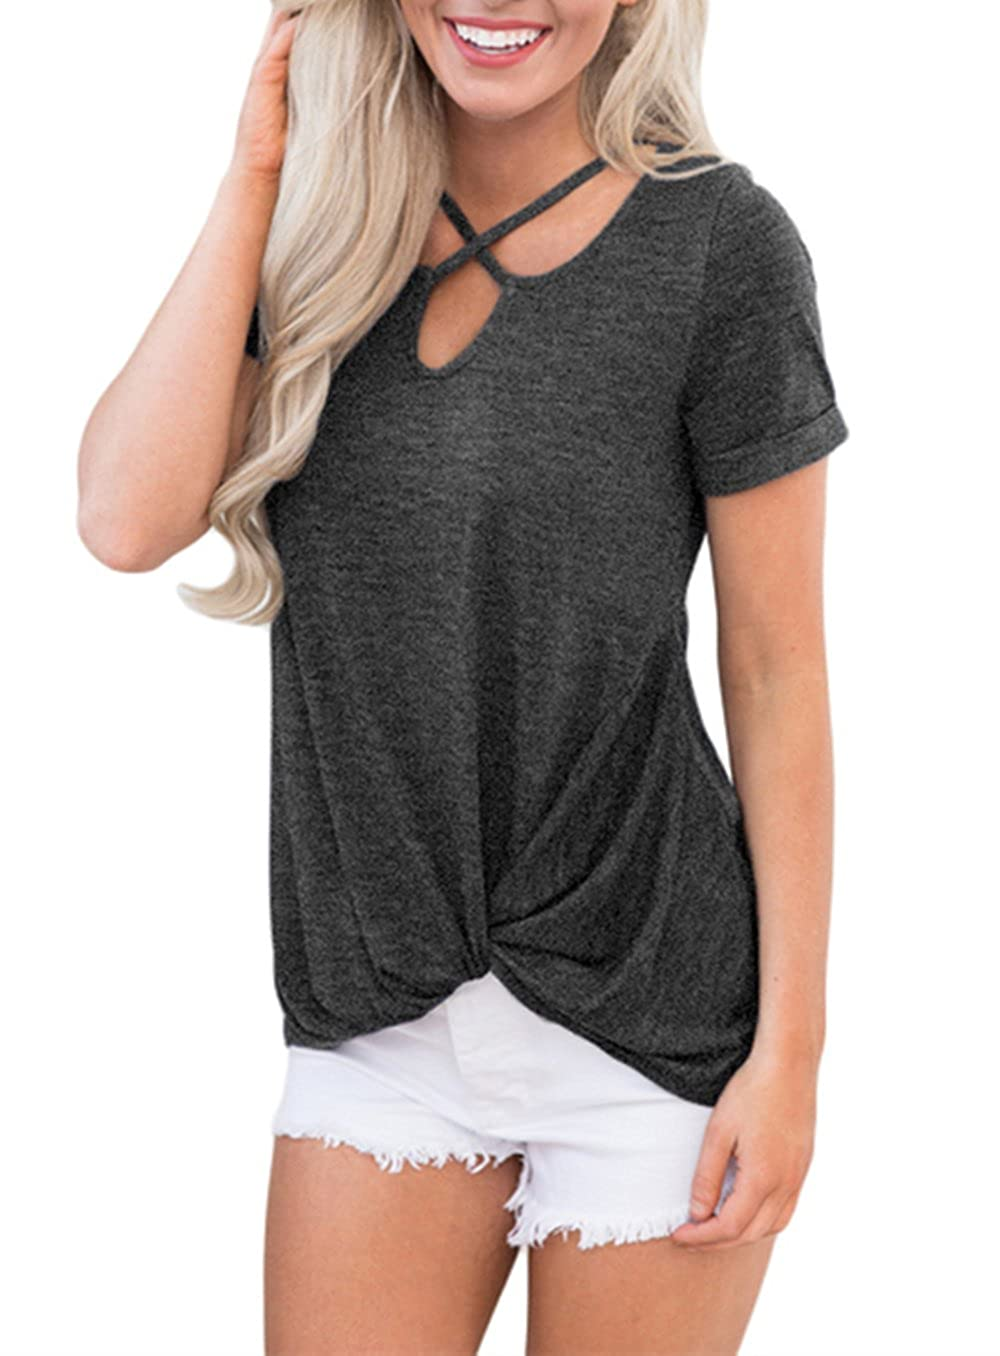 d12904ac491a0 Short Sleeve Shirt, V Neck T Shirt, Plus Size Tunic Top, Summer Blouses for  Women Criss-crossing neck, knotted detail and a stunning high-low cut.  Fashion ...